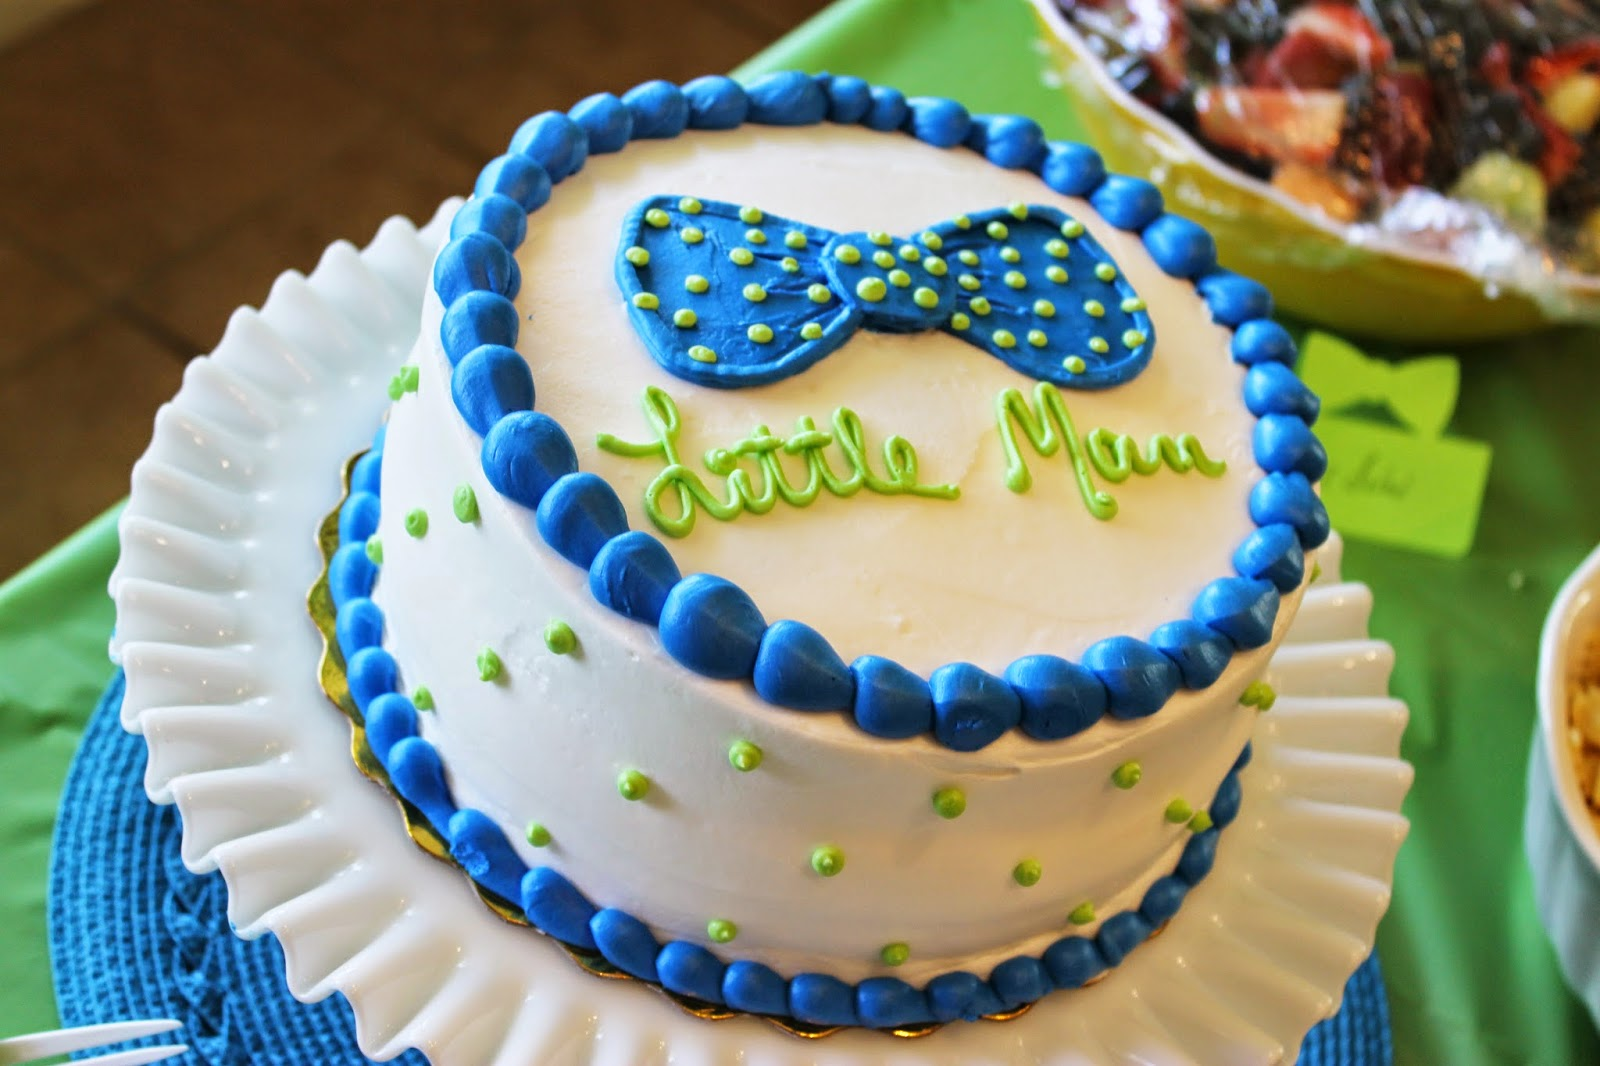 Tiffzippy Baby Shower - Little Man Cake